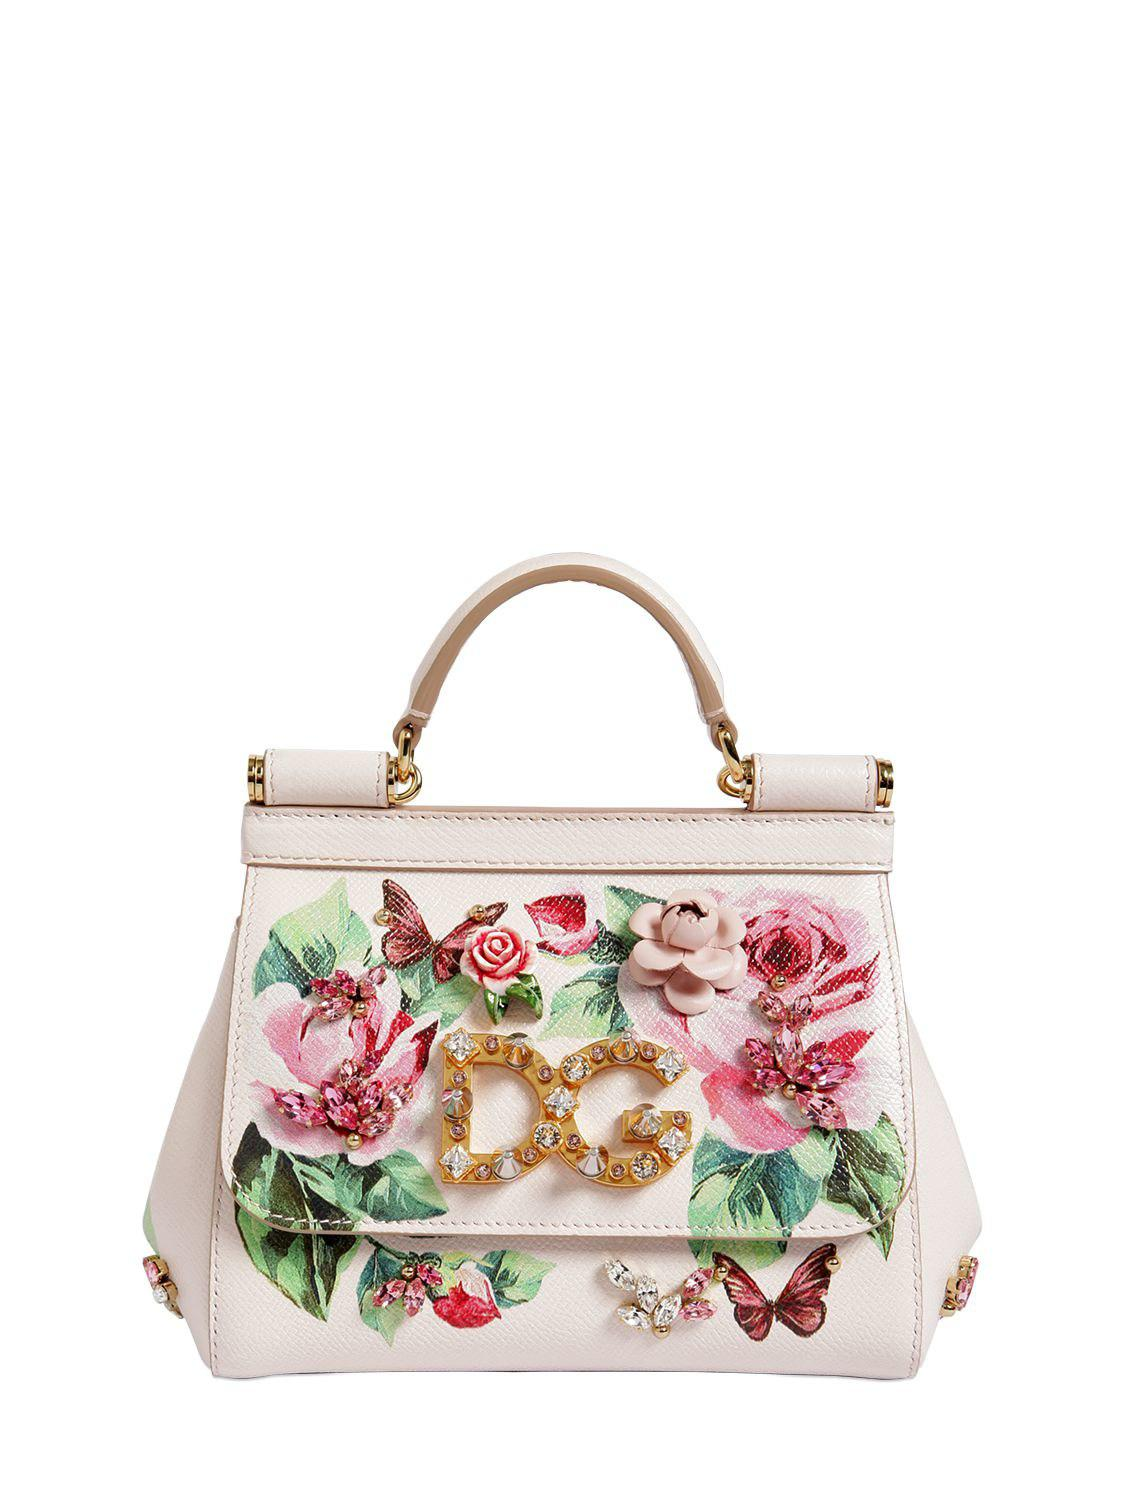 d23bd1ed1a9f Gallery. Previously sold at  LUISA VIA ROMA · Women s Dolce Gabbana Sicily  ...